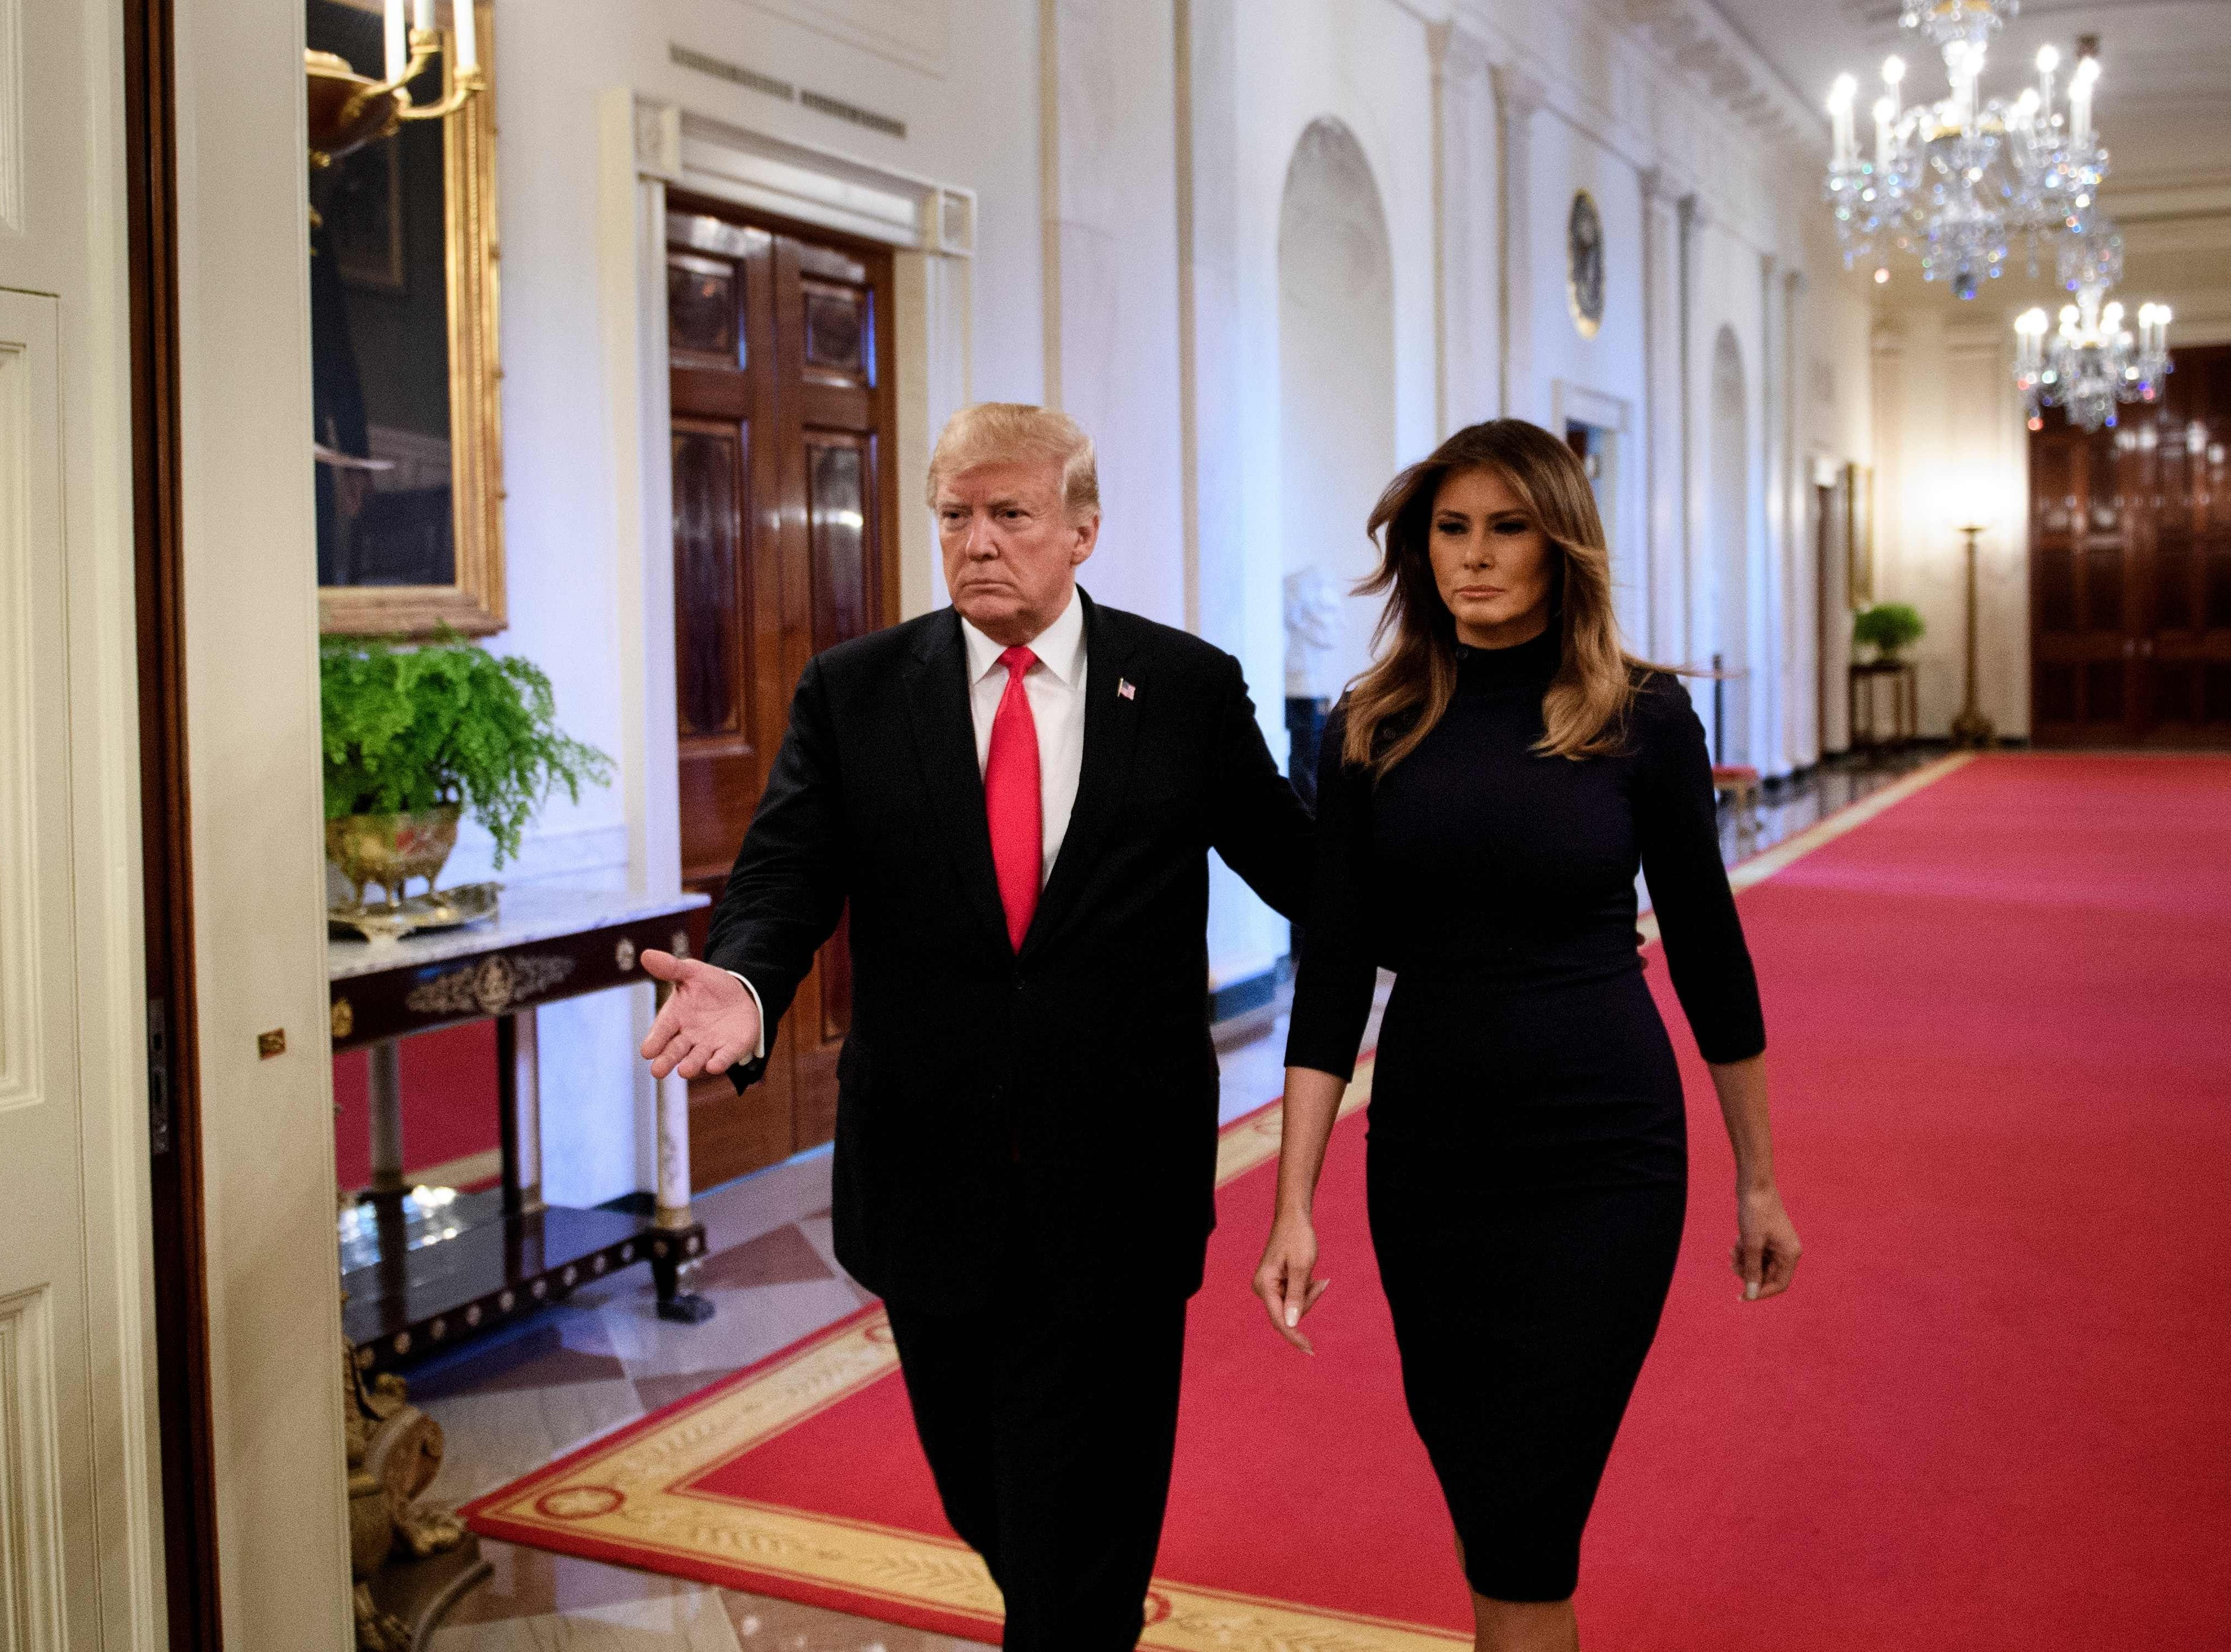 US President Donald Trump and US First Lady Melania Trump arrive for an event on a year of progress and action to combat the opioid crisis, in the East Room of the White House on October 24, 2018 in Washington, DC.